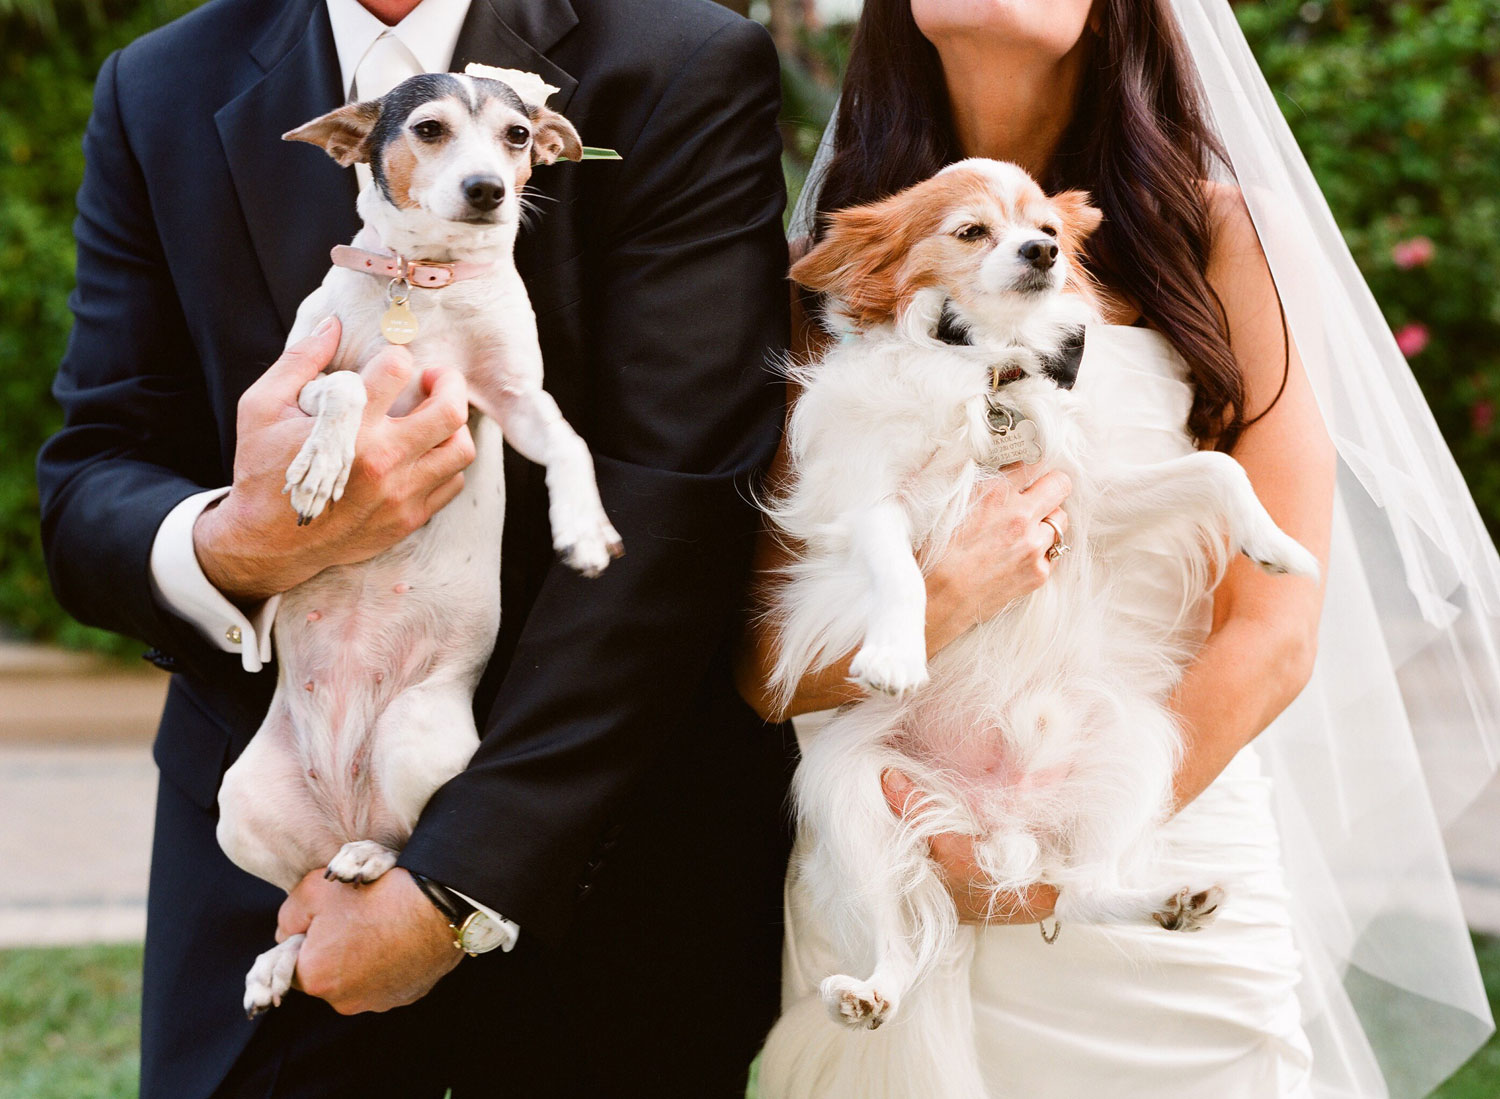 Bride and groom holding small dogs at wedding ceremony outdoors